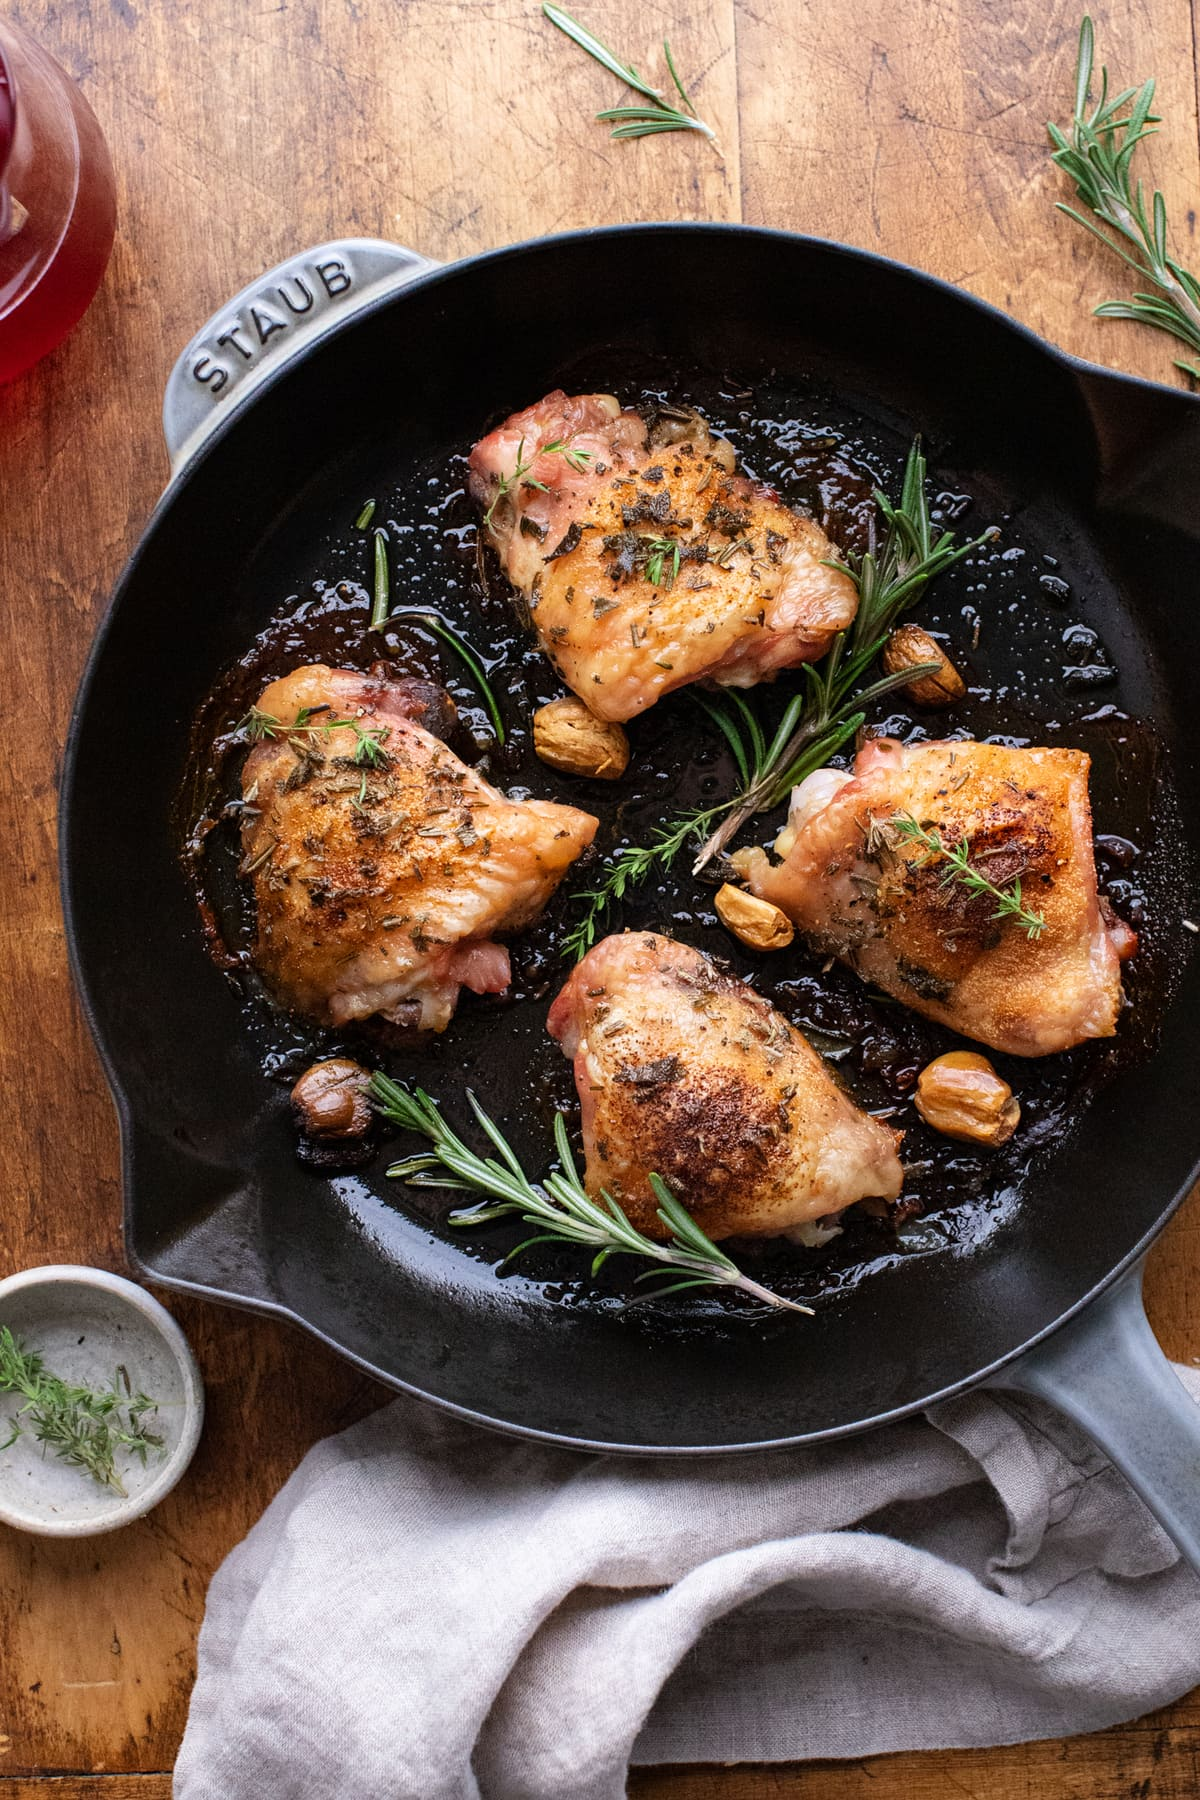 Cast iron skillet with roasted chicken thighs and herbs in it, sitting on a brown wooden background.